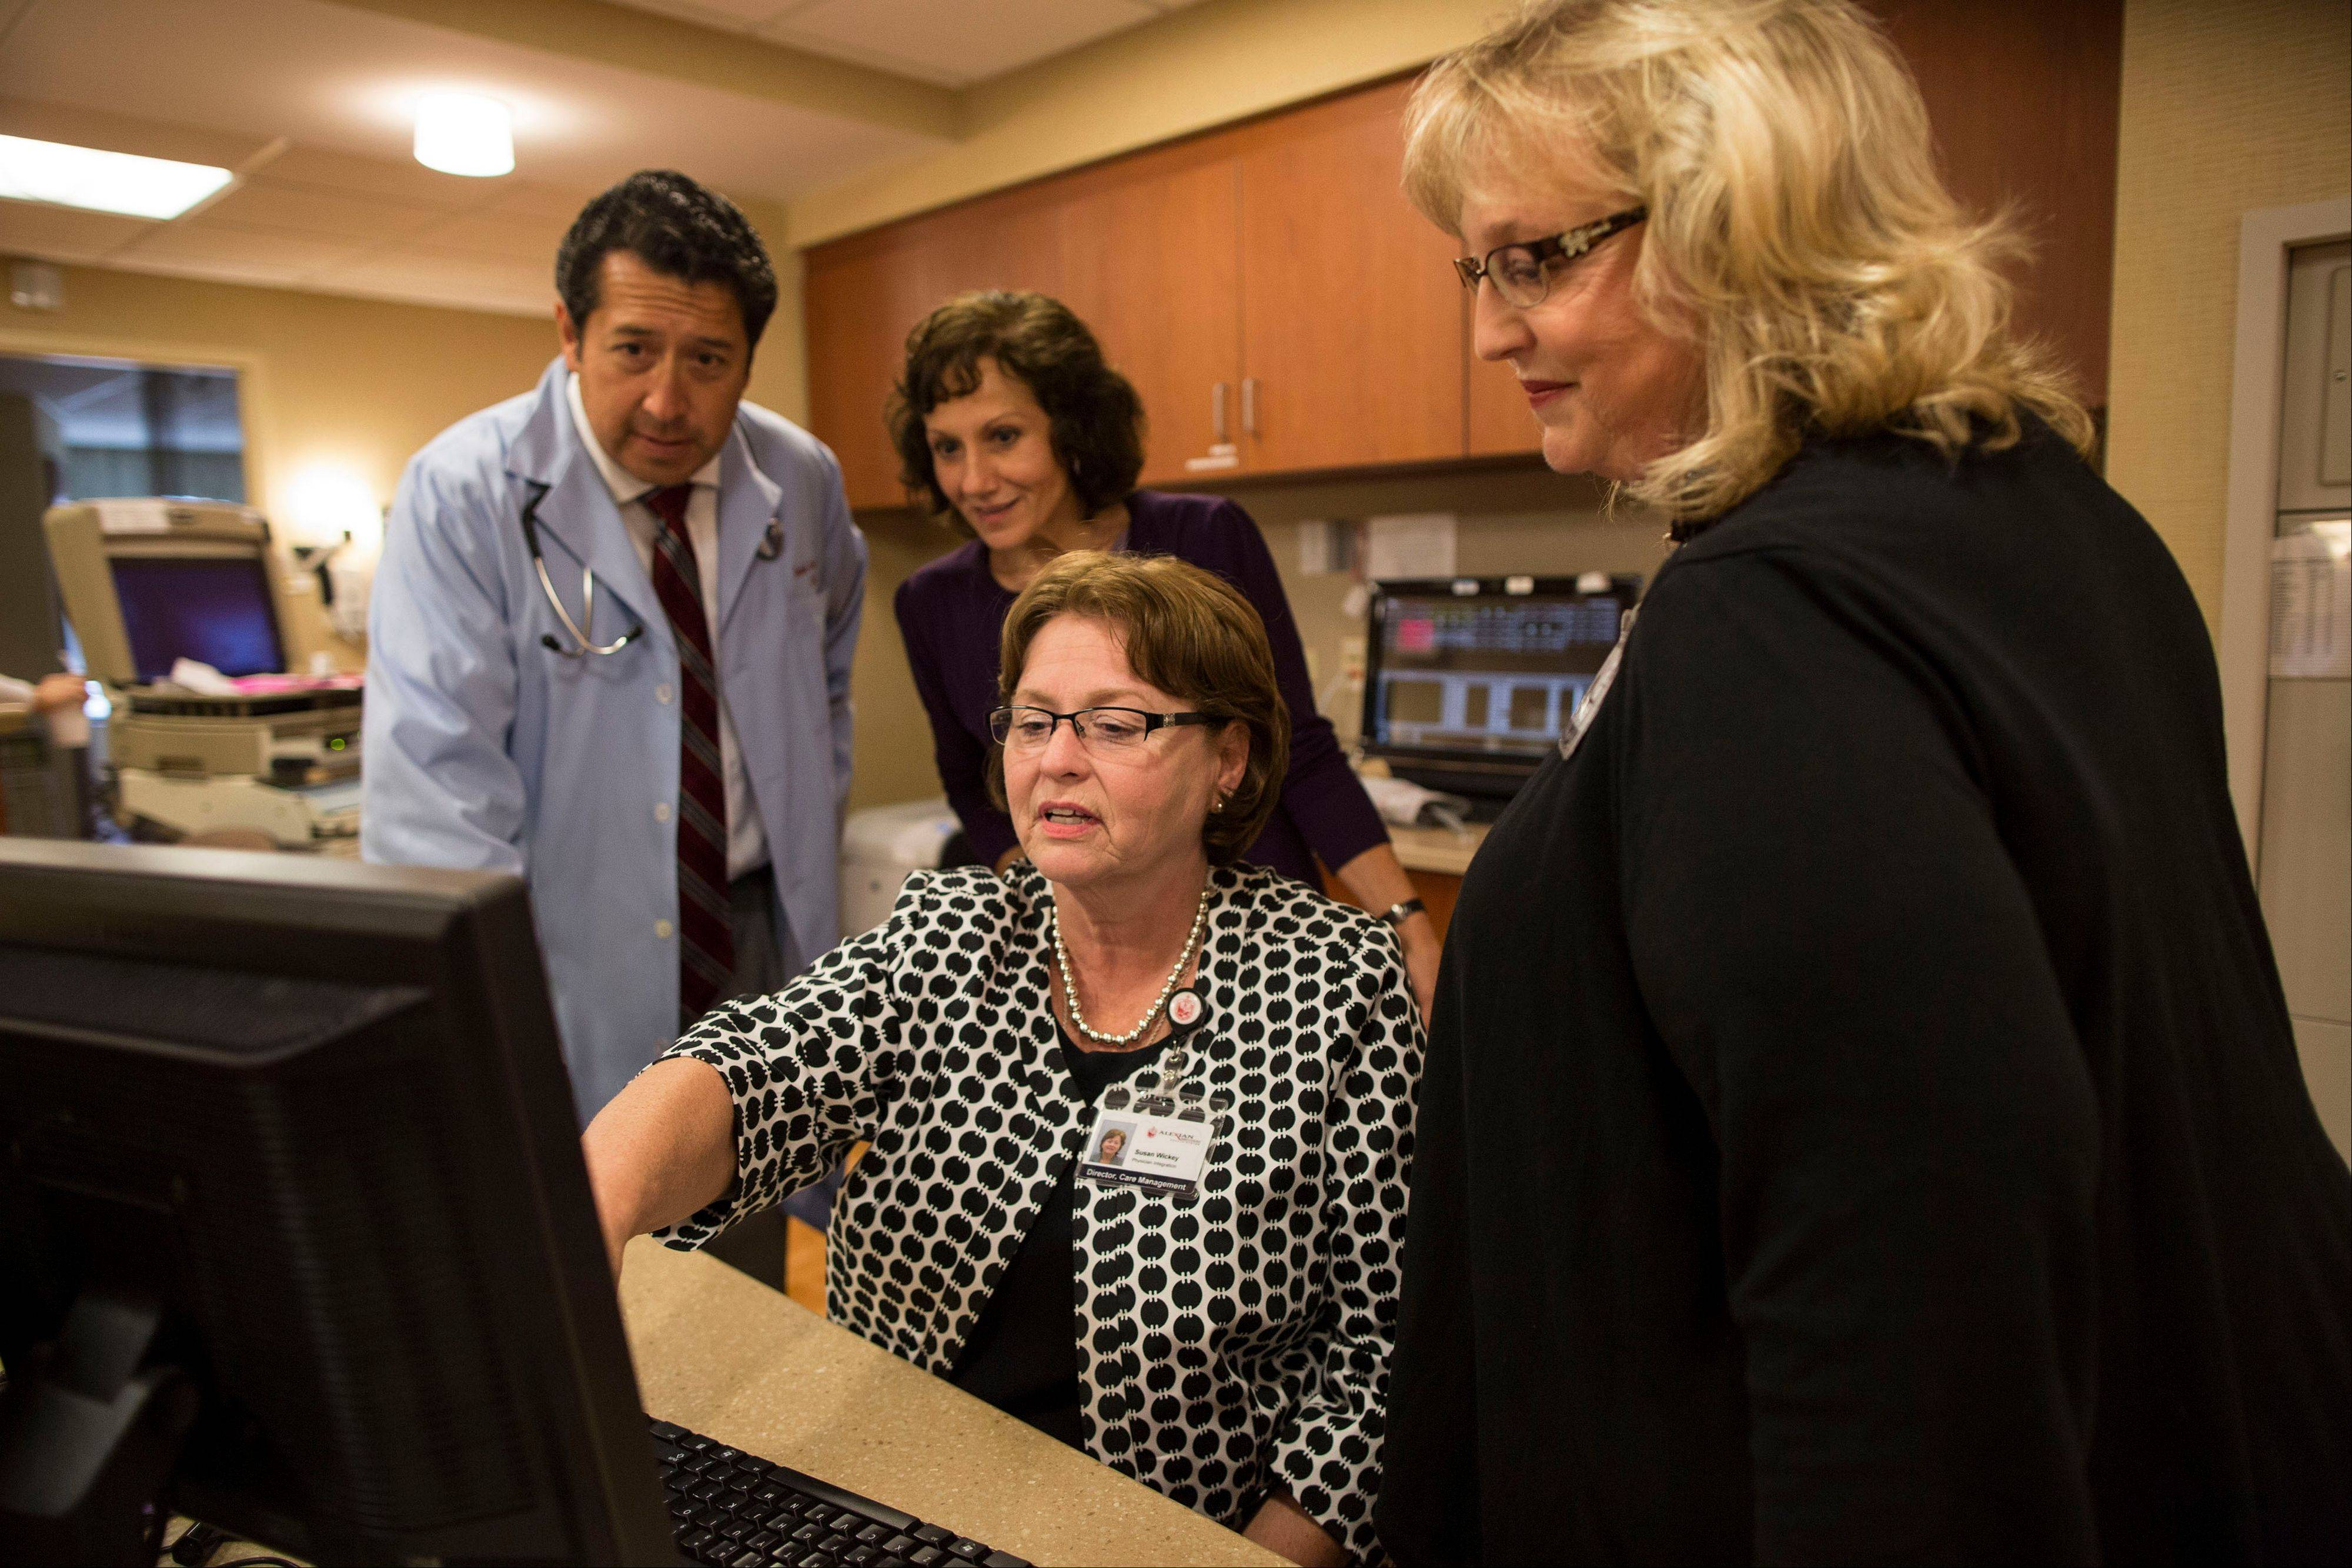 Dr. Reinhold Illerna, from left, Administrative Director of Case Management at Alexian Brothers Healthcare Center, Mary Schumann, Director of Care Management at Alexian Brothers Healthcare Center, Sue